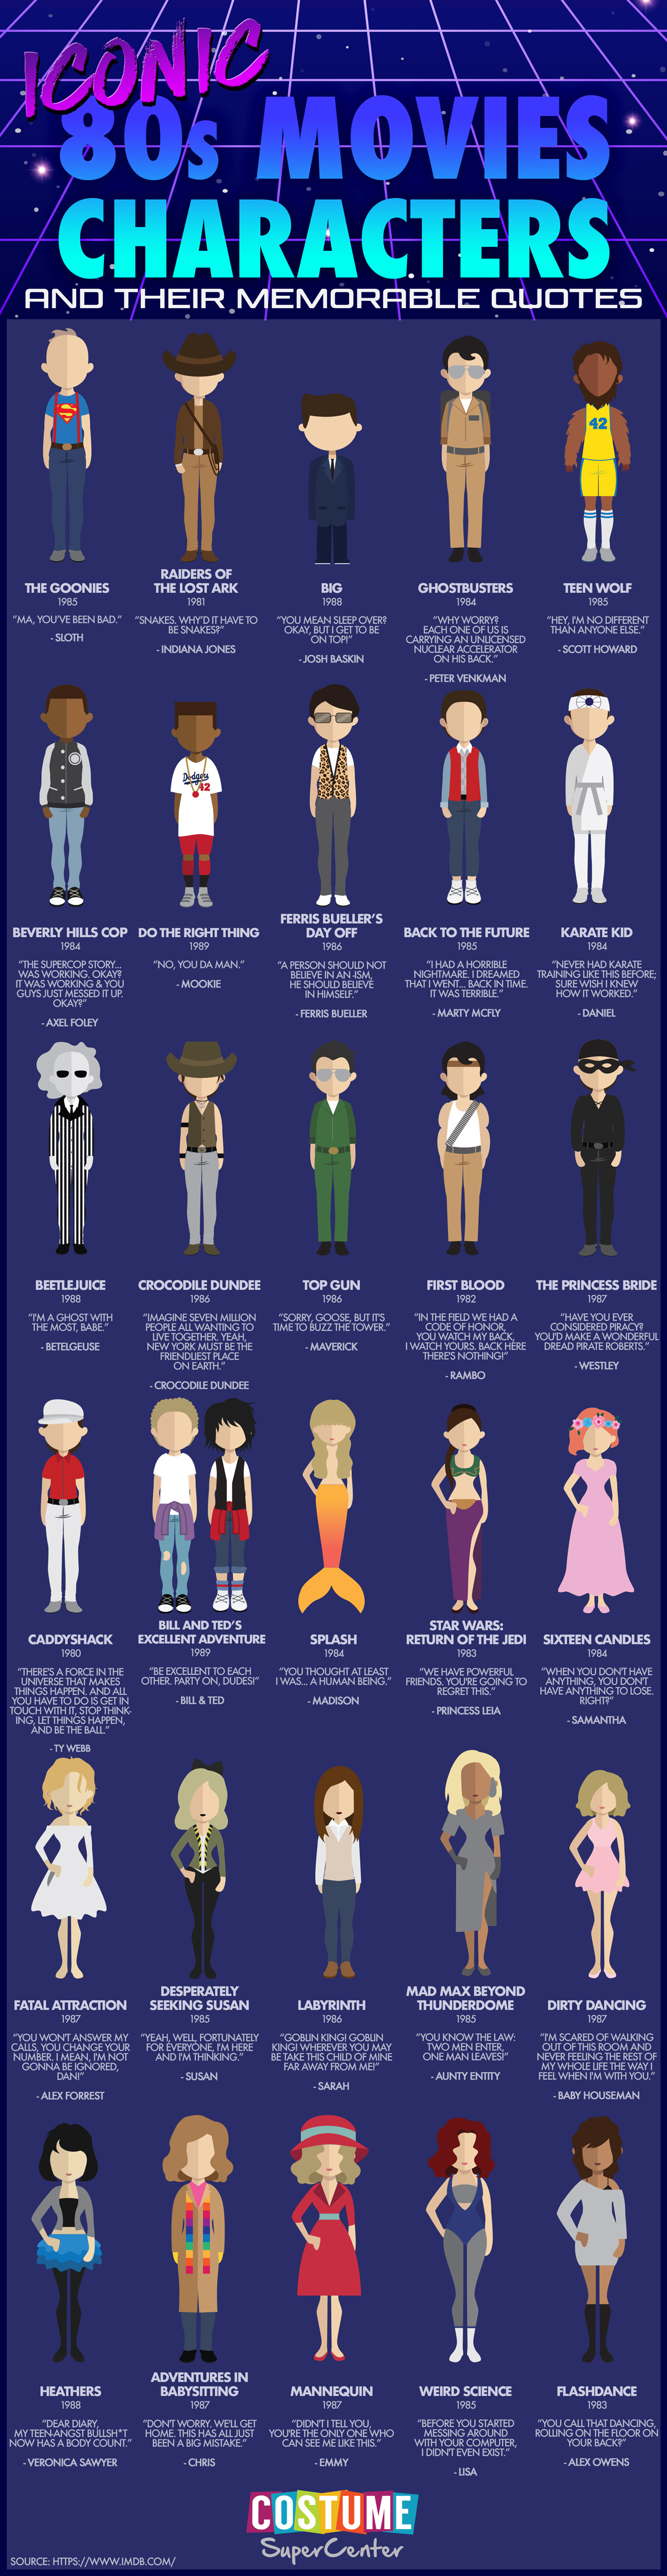 Iconic 80's Movies Characters and Their Best Lines